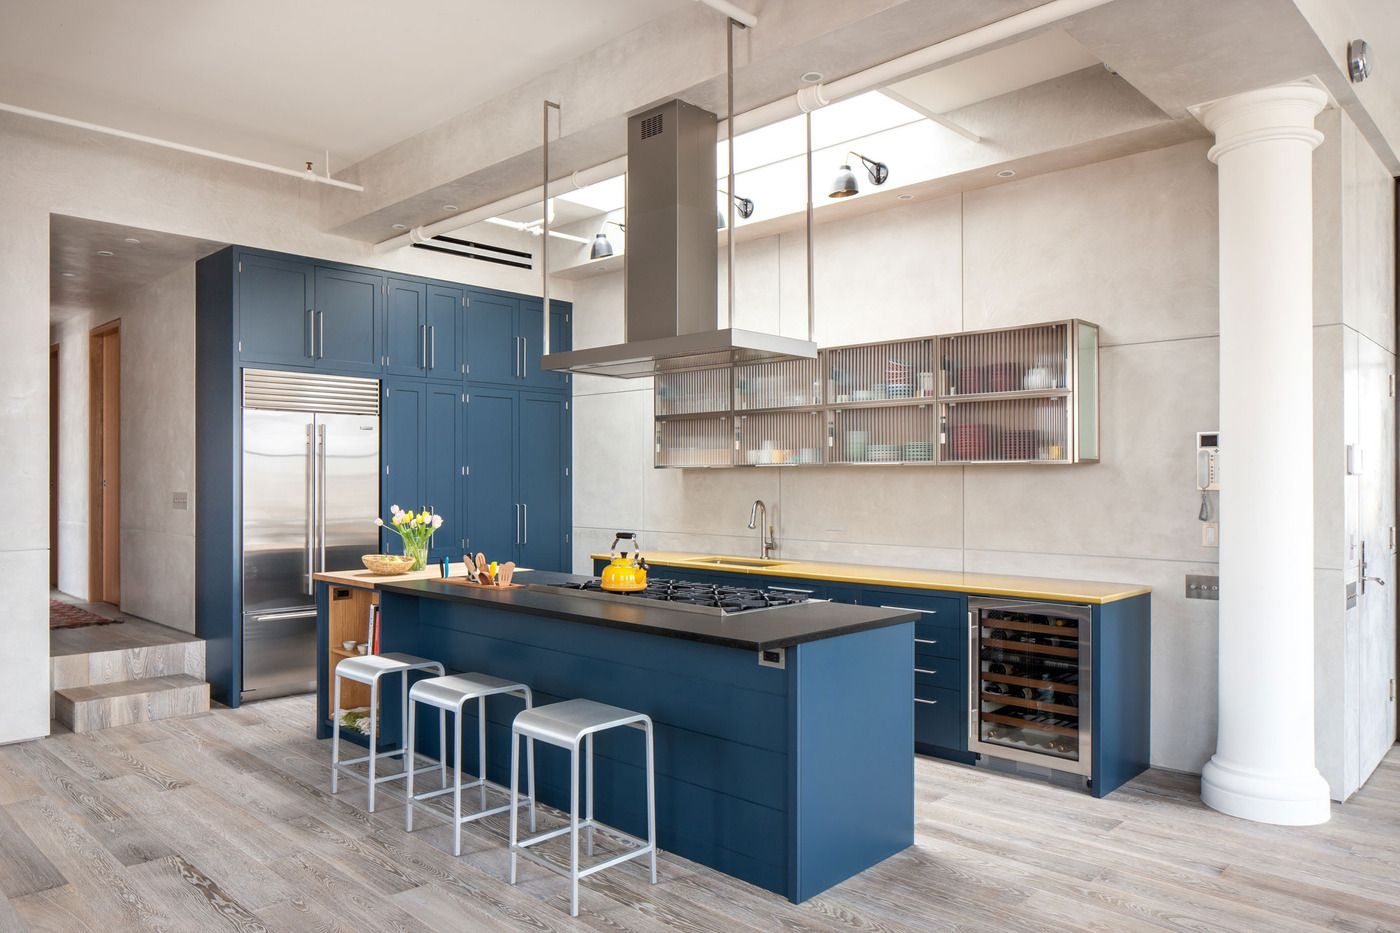 Royal Blue Kitchen On Light Color Floors Is A Modern Contemporary